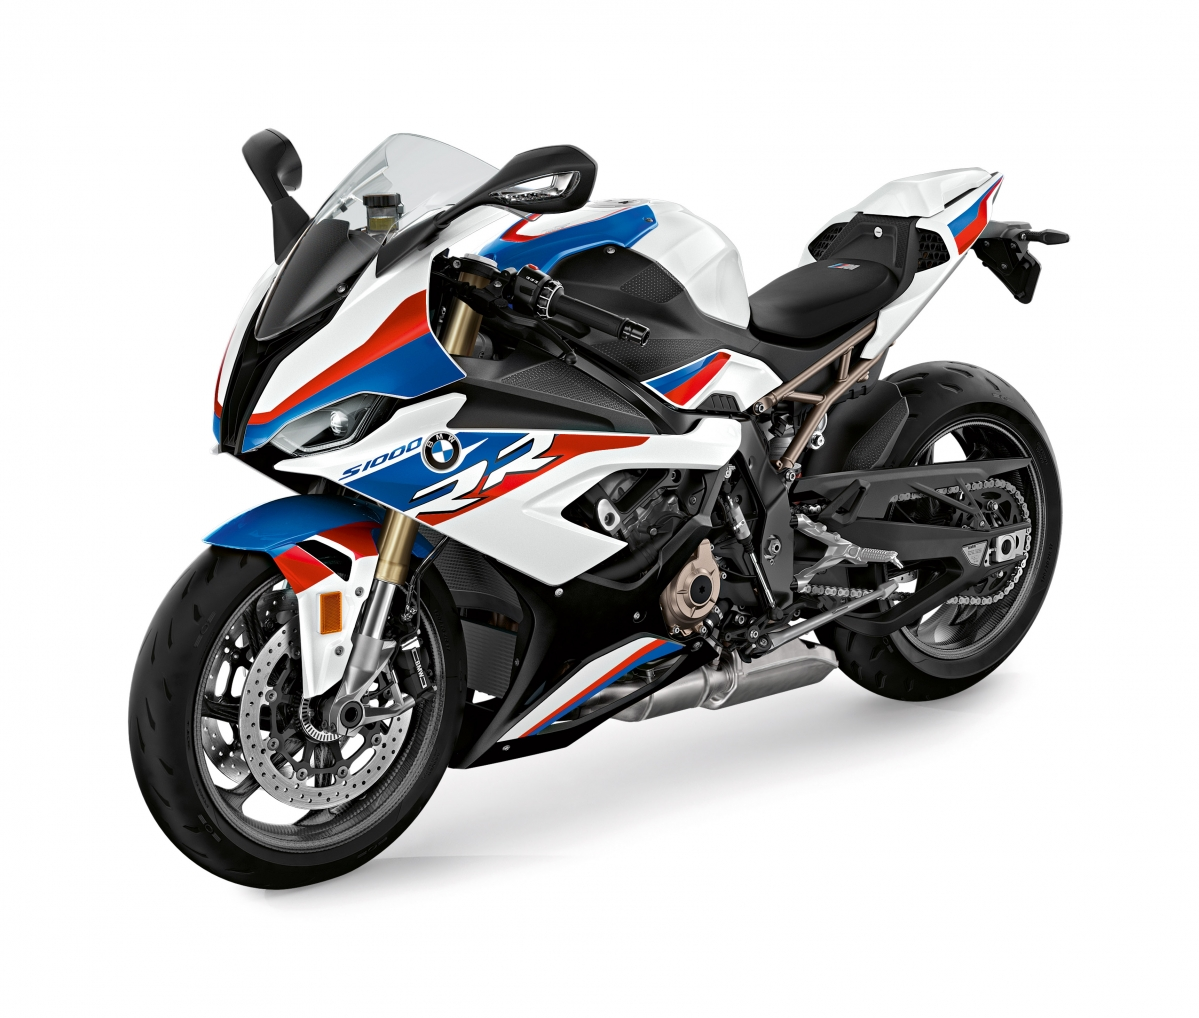 P90327364_highRes_bmw-s-1000-rr-with-m